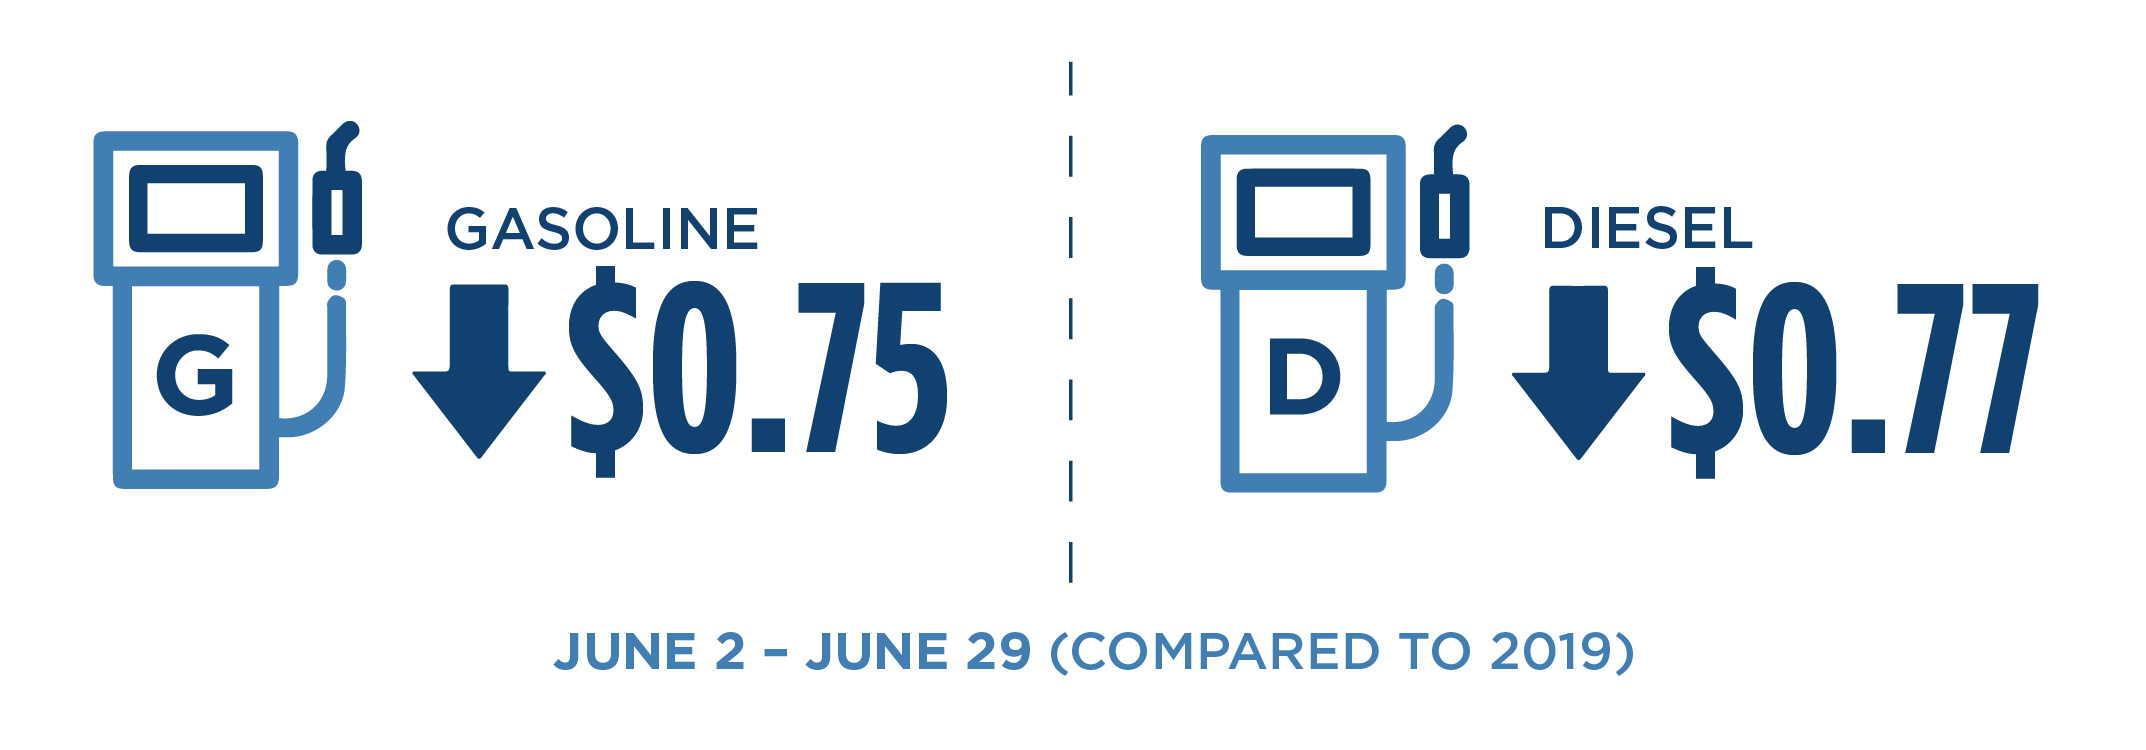 Infographic showing the decline in California Transportation fuels. From Early June to Late June, Gasoline prices were down $0.75 and Diesel prices were down $0.77.